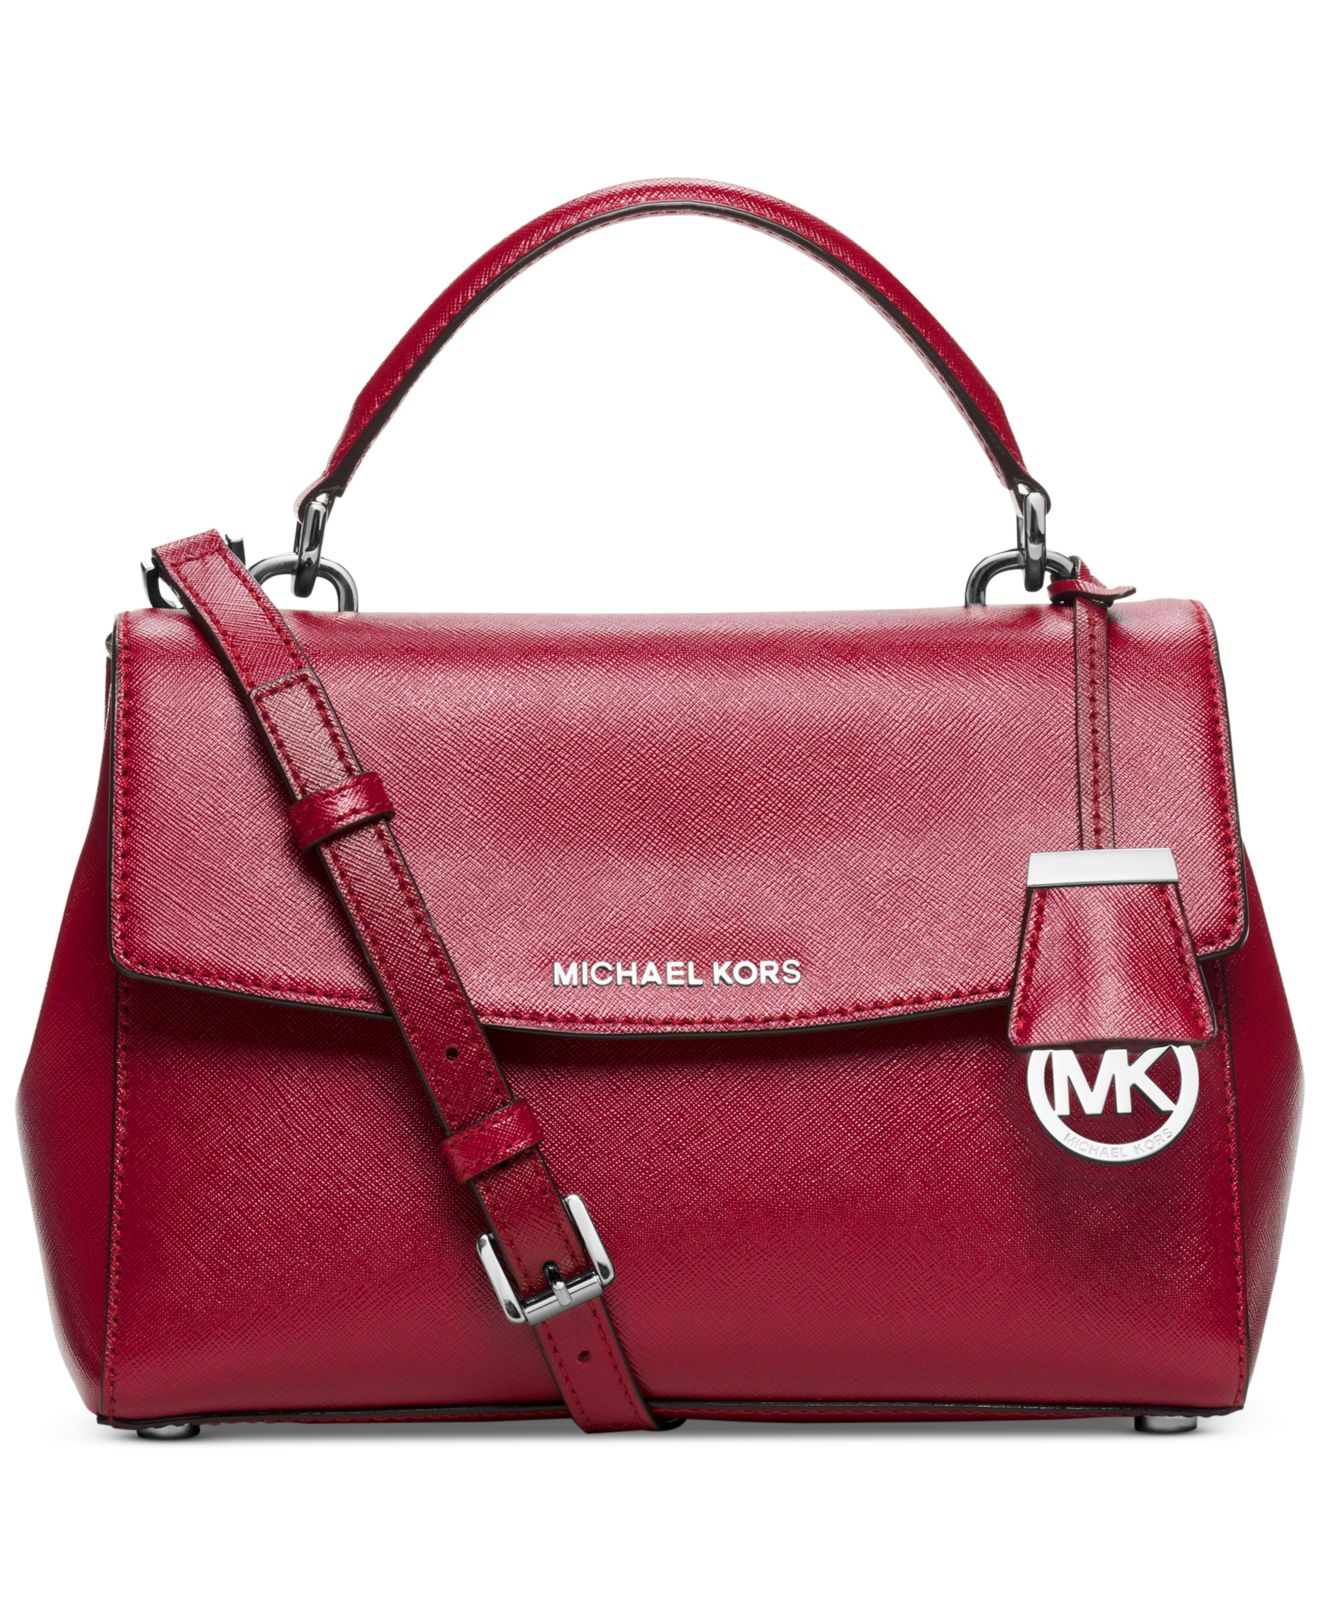 2bd83c83e139 ... Michael kors Ava Small Leather Satchel in Red Lyst ...